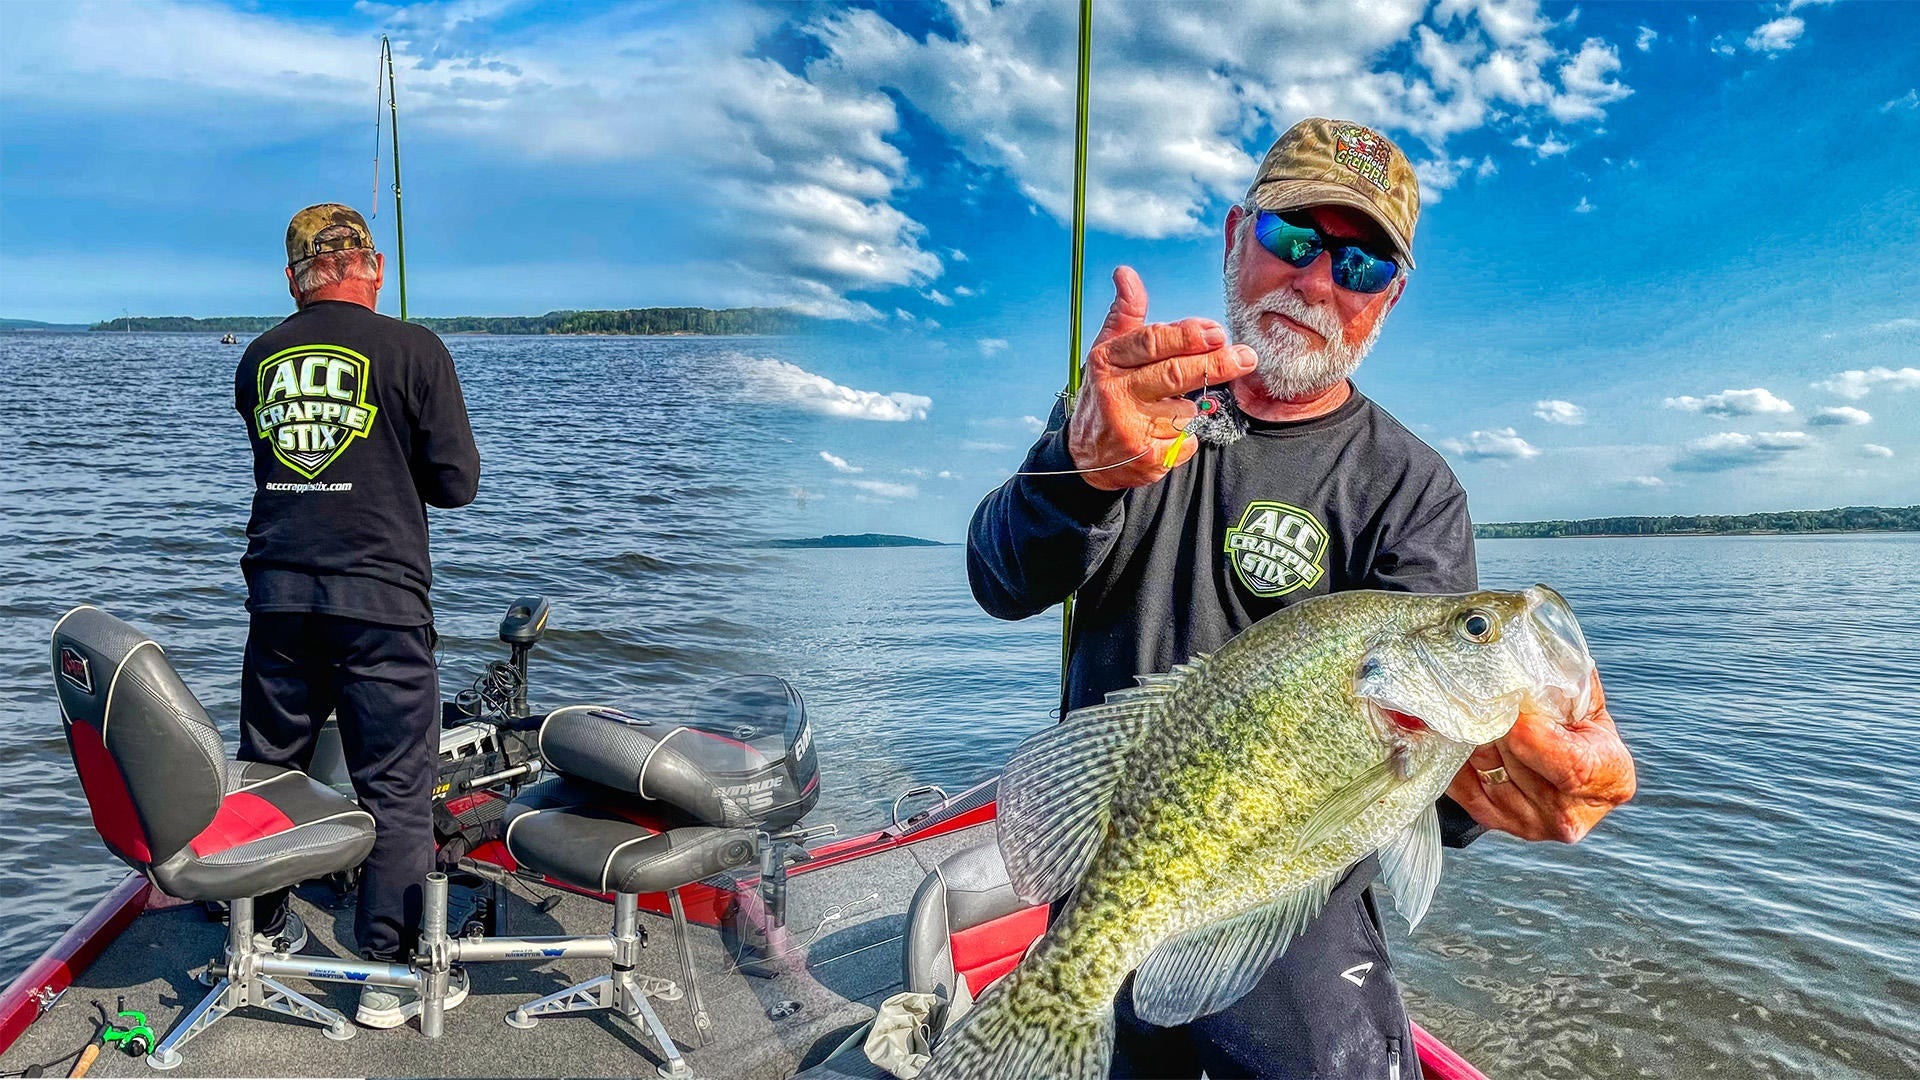 How to Swing Big Crappie on Long Rods Without Breaking Them